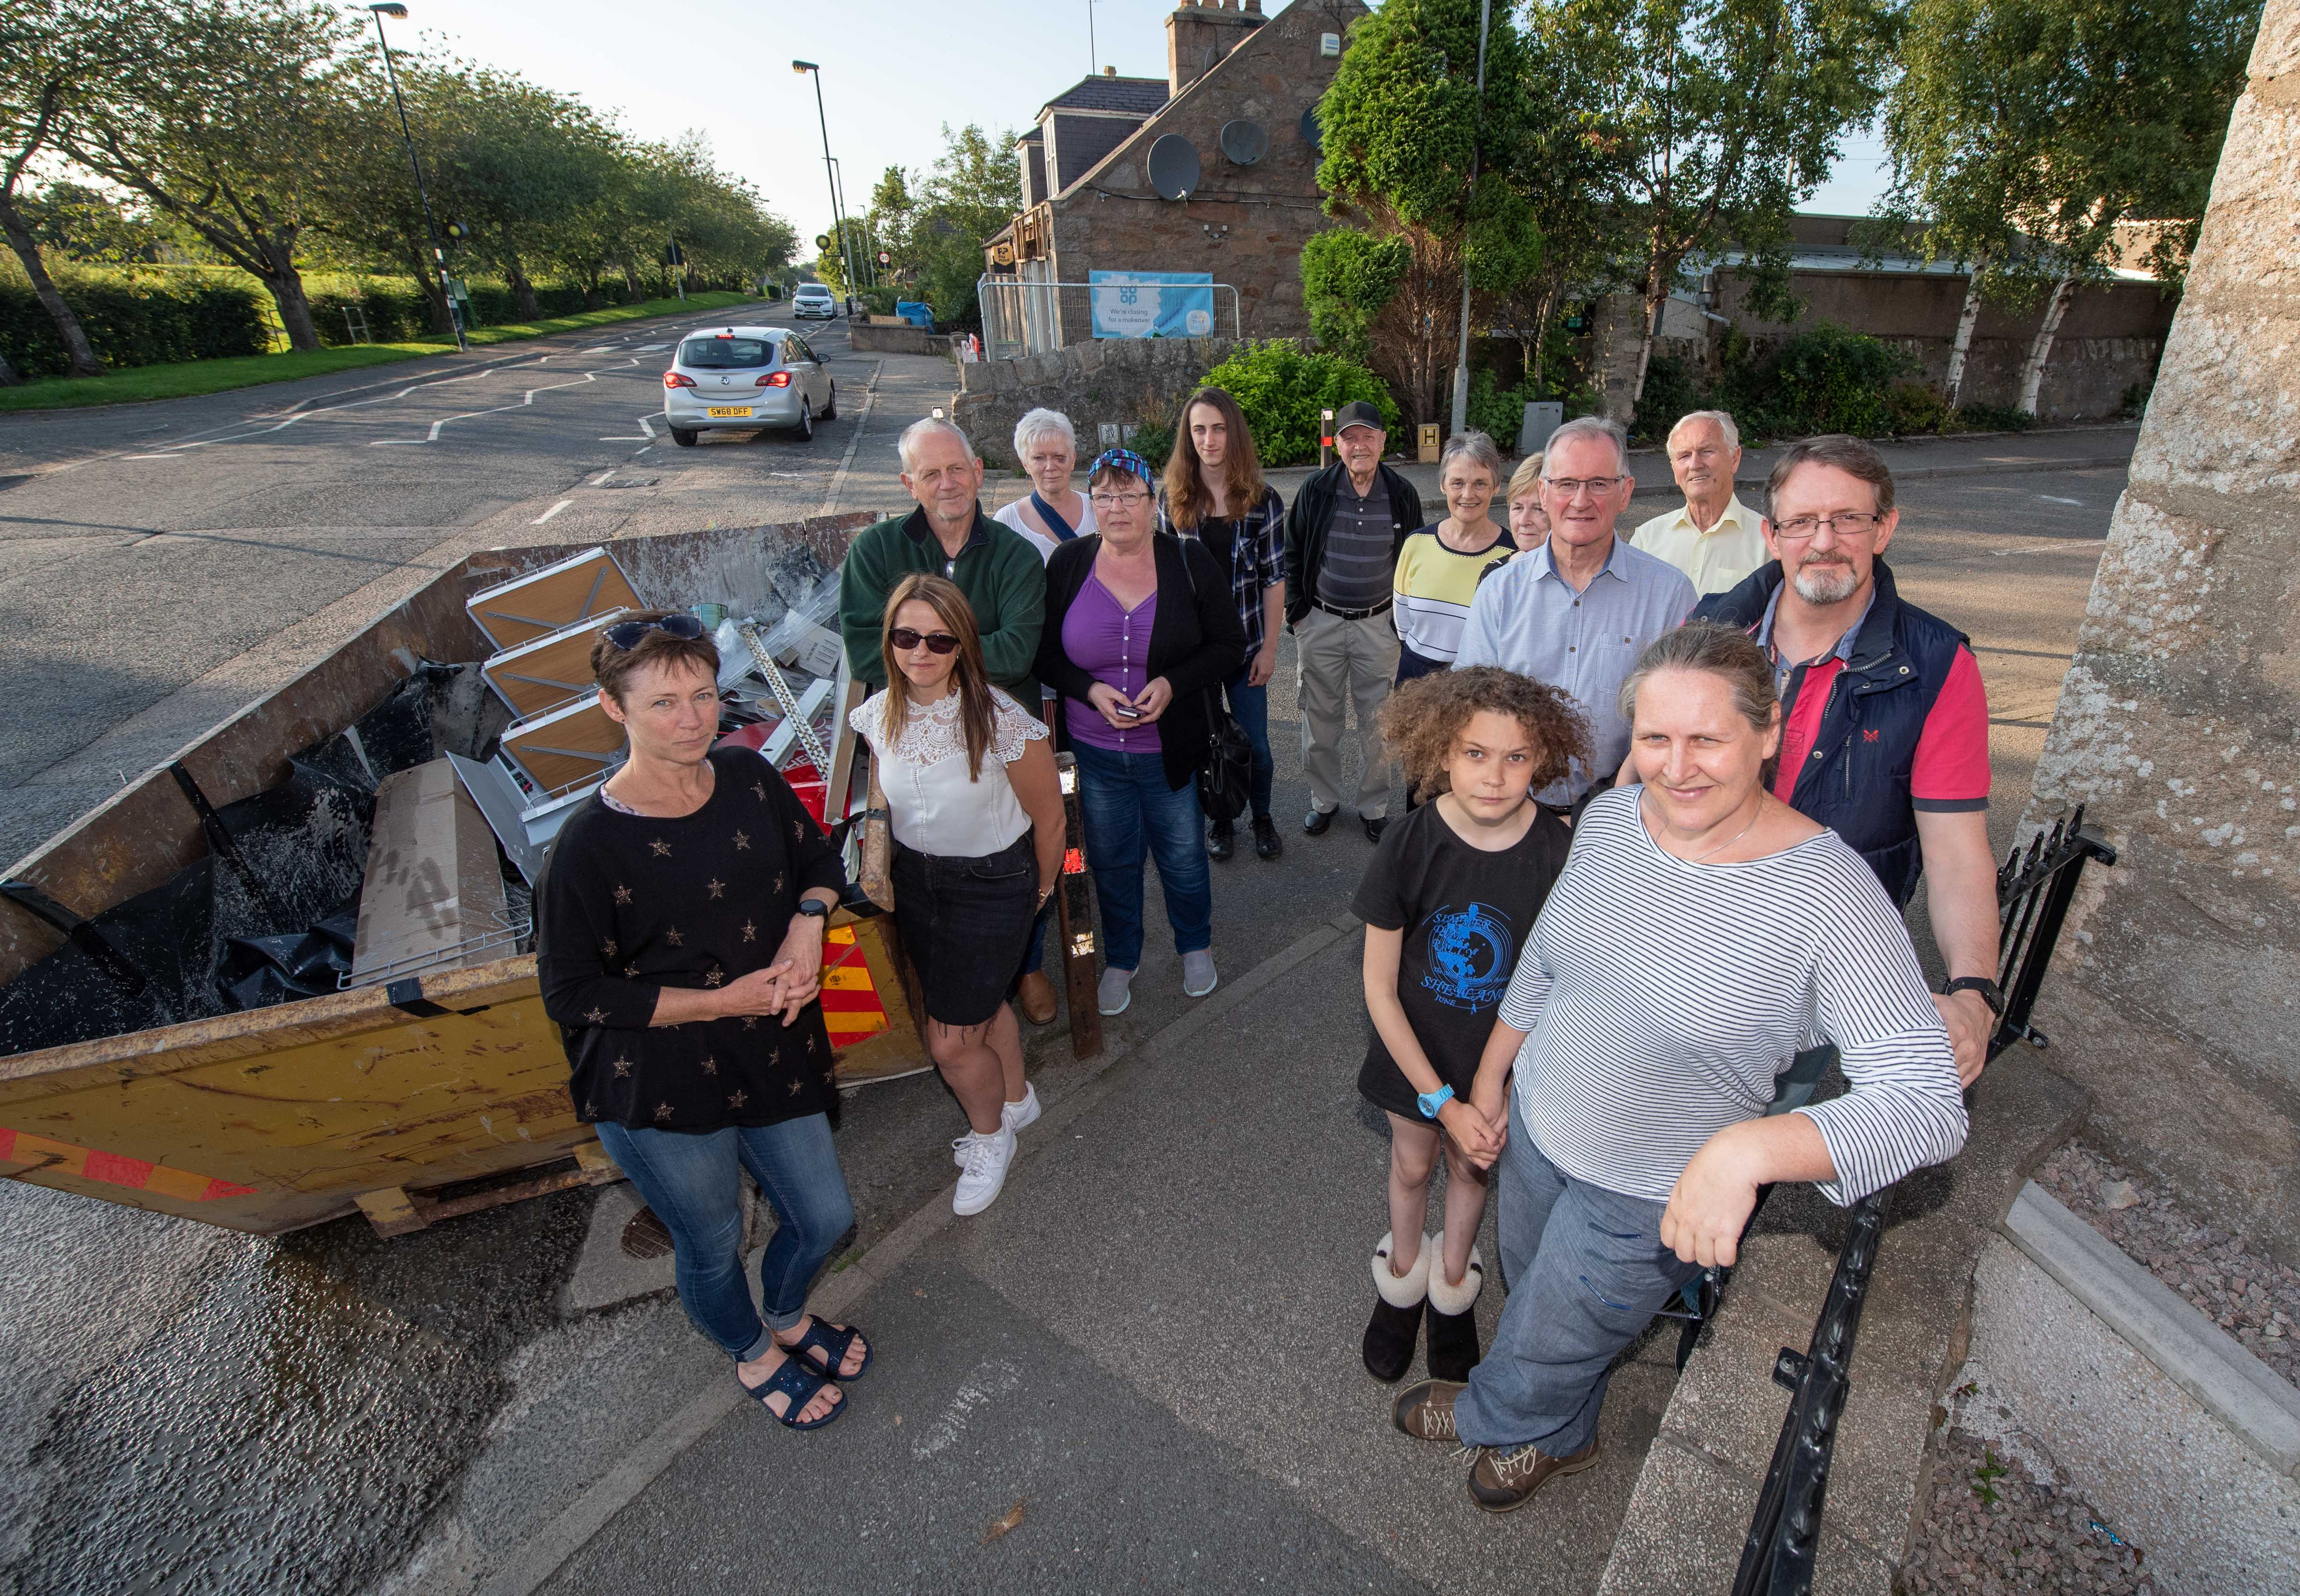 Residents of the village of Pitmedden are raising safety concerns over the proposed opening of the junction in the middle of the village due to new housing development.